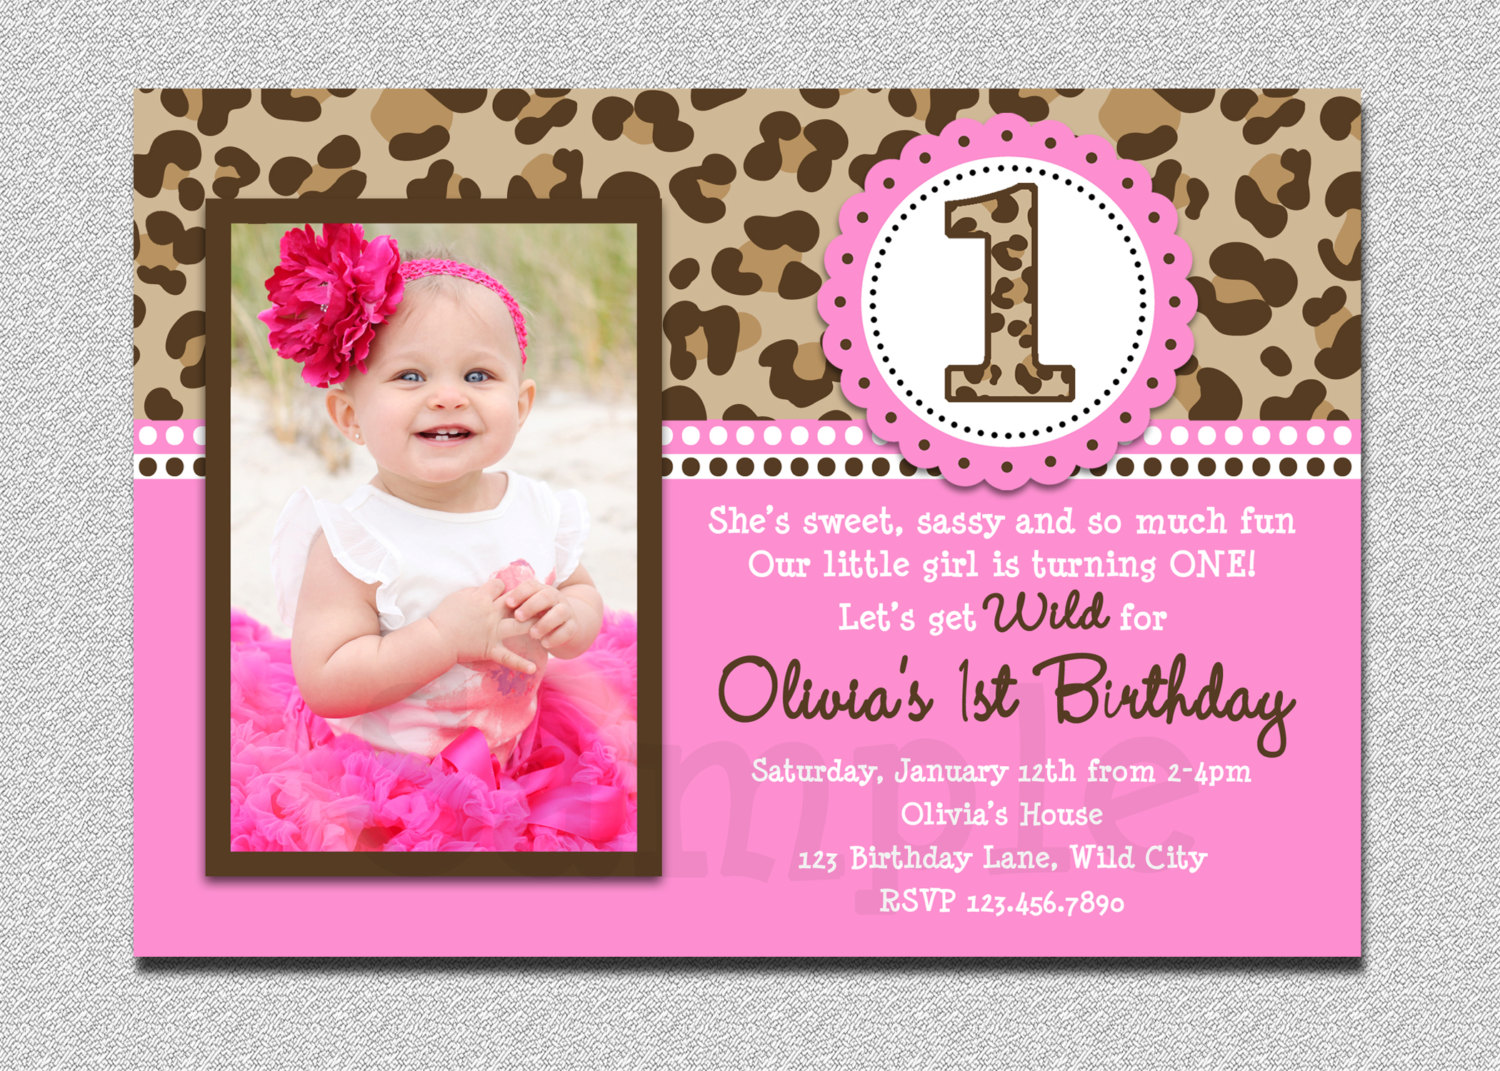 birthday invitation design ideas ; Remarkable-First-Birthday-Invitations-To-Make-Free-Printable-Birthday-Invitations